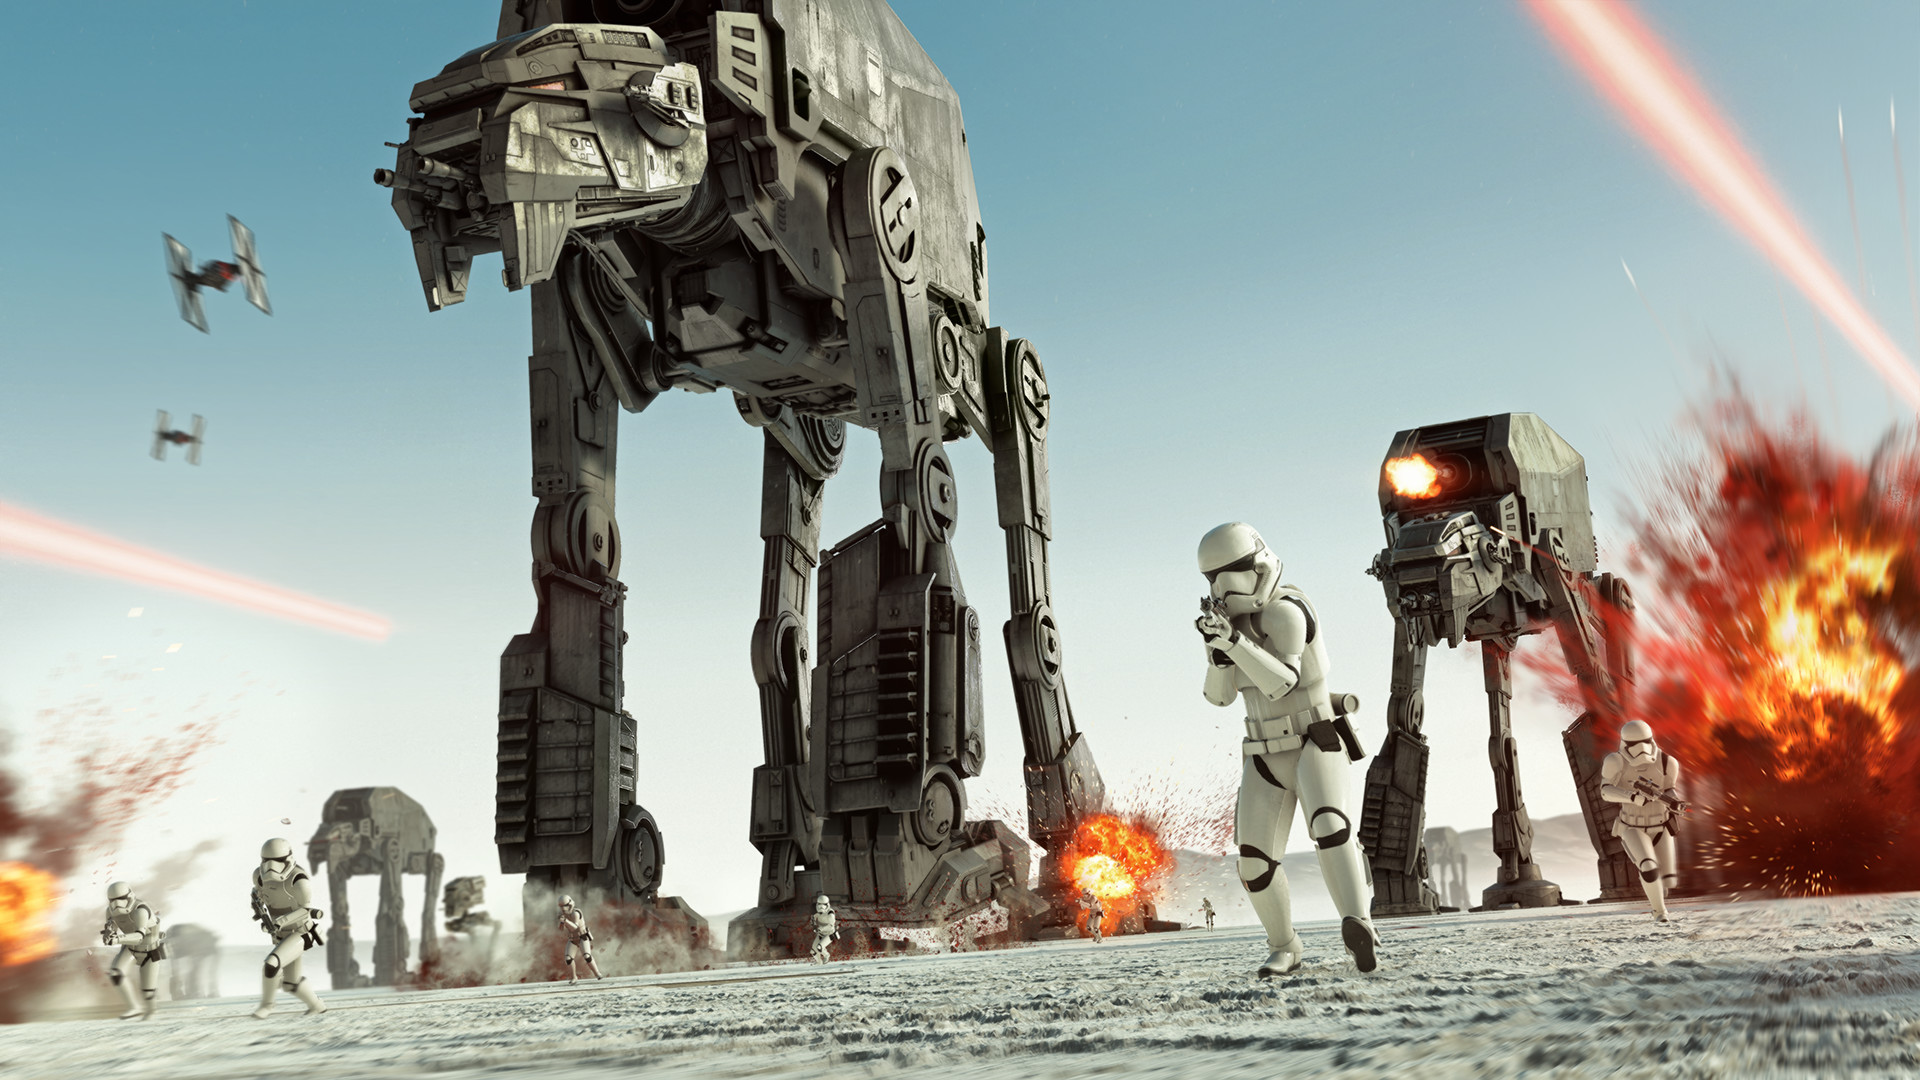 Stormtroopers and AT-ATs move across a crowded battlefield.